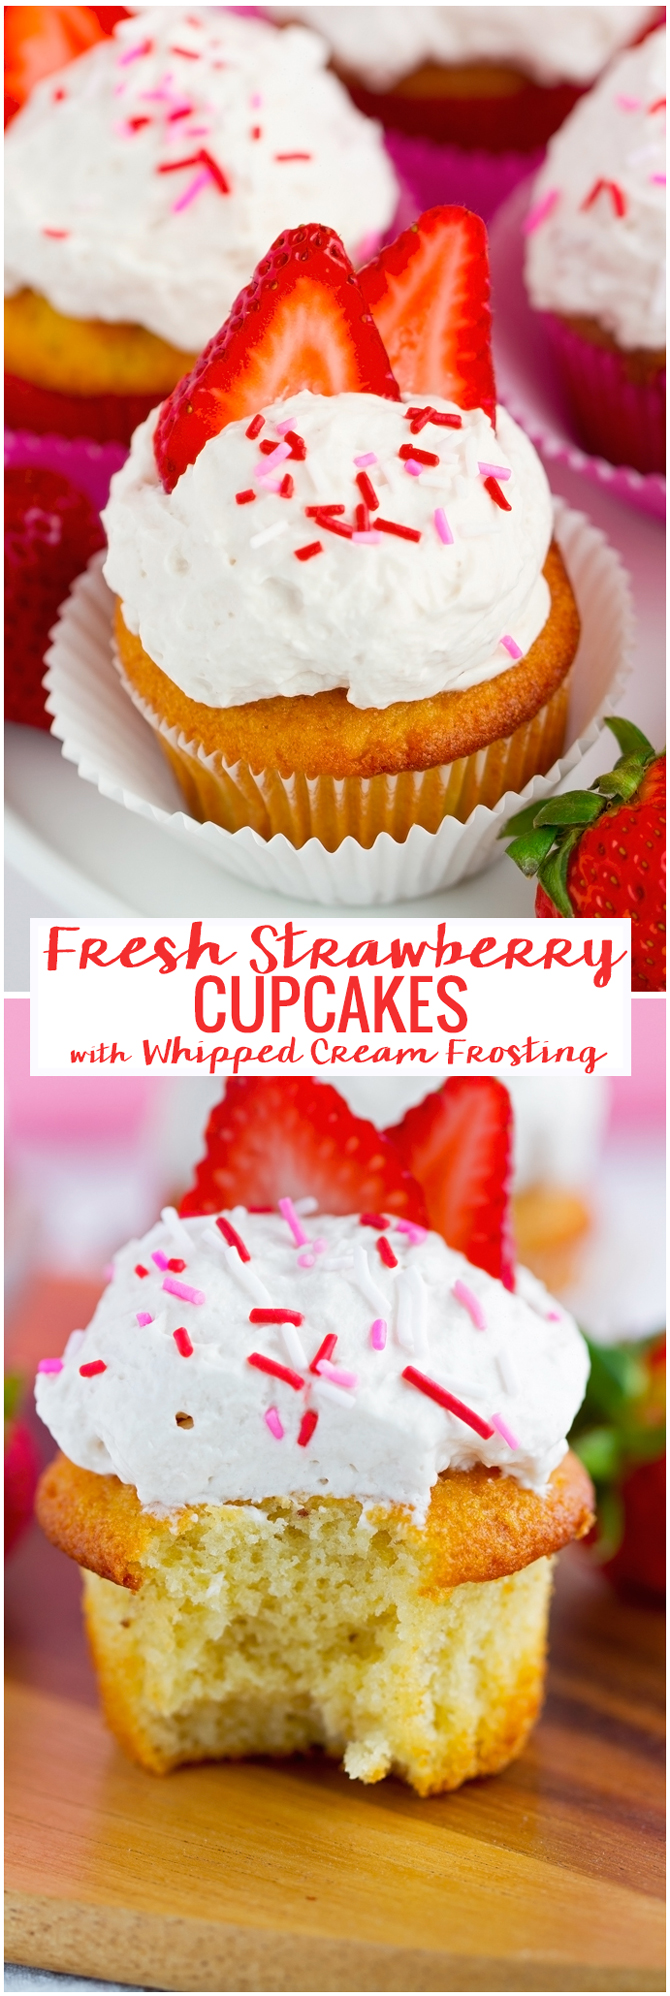 Fresh Strawberry Cupcakes with Whipped Cream - So good and so easy to make! Everyone is going to love these. #cupcakes #whippedcream #strawberrycupcakes   Littlespicejar.com